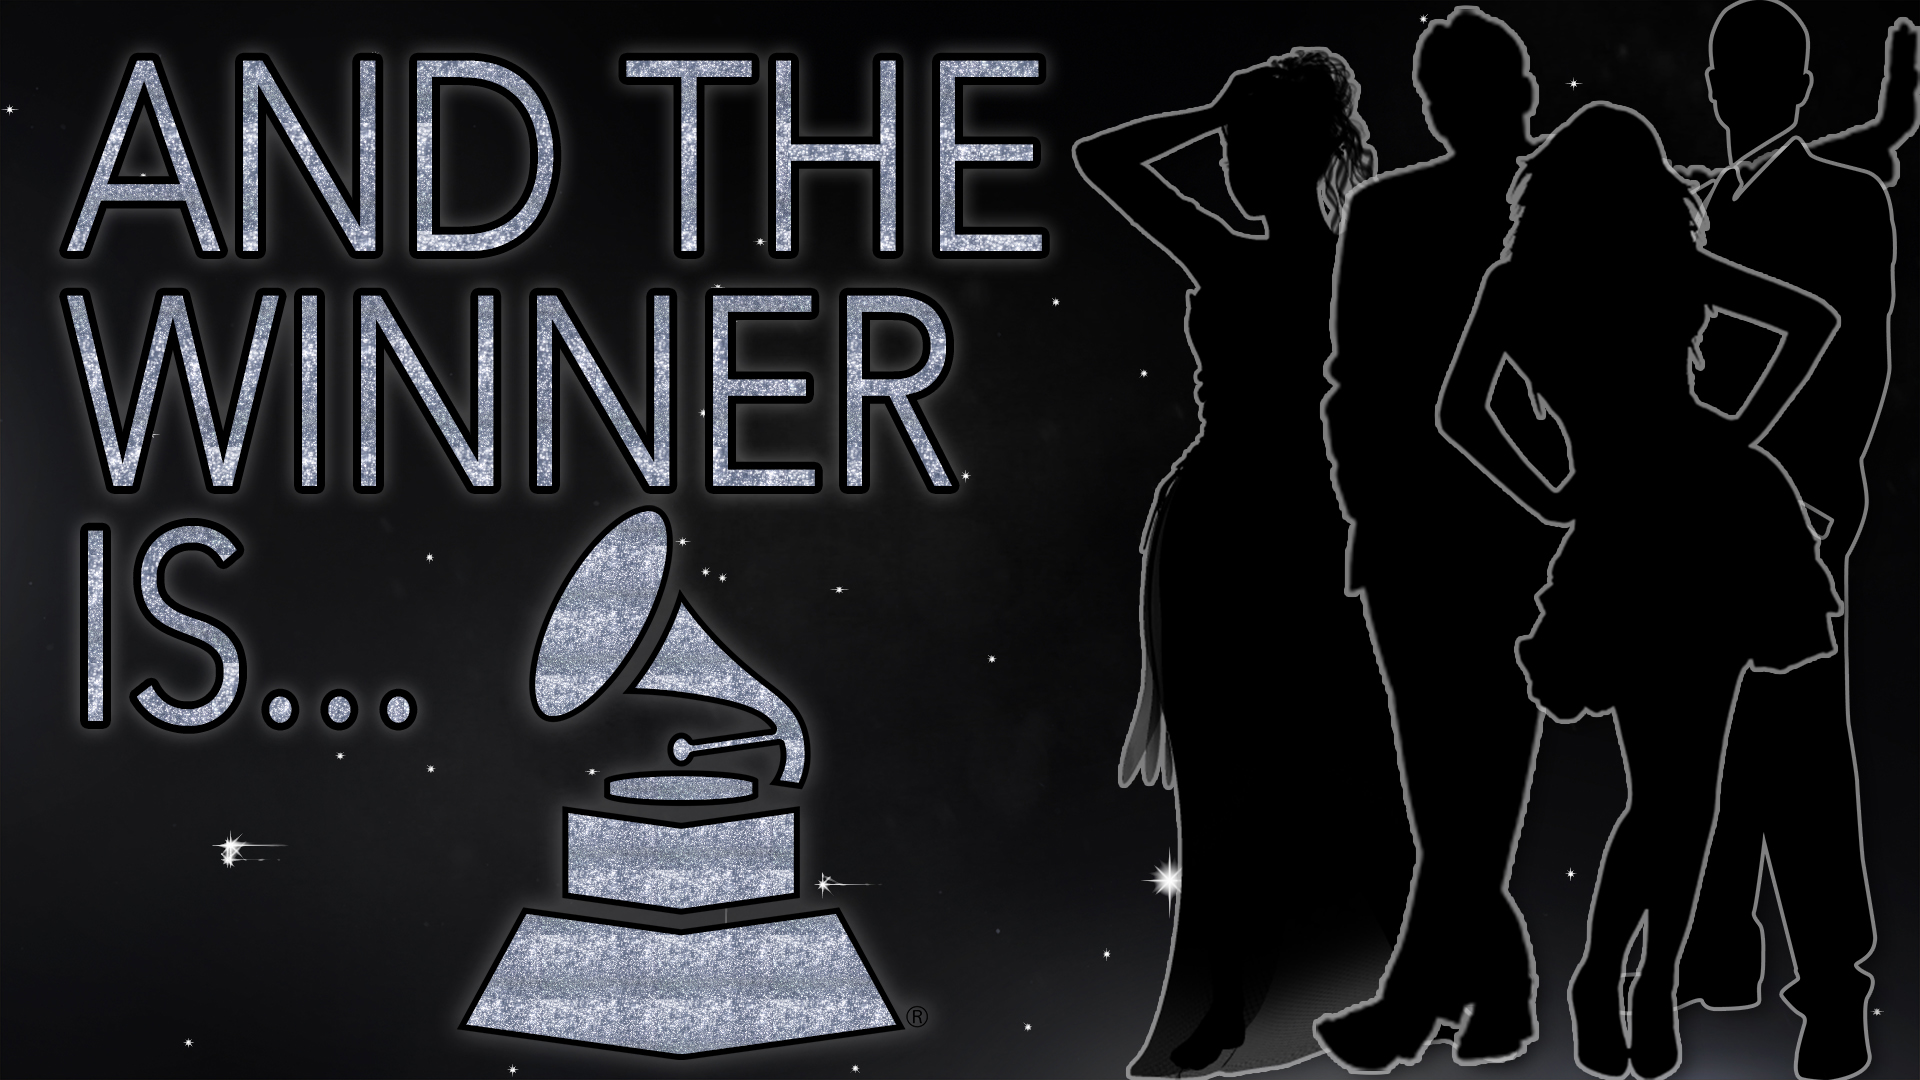 There are plenty of gramophone trophies to be awarded at this year's GRAMMYs, but do you know who's won the most?